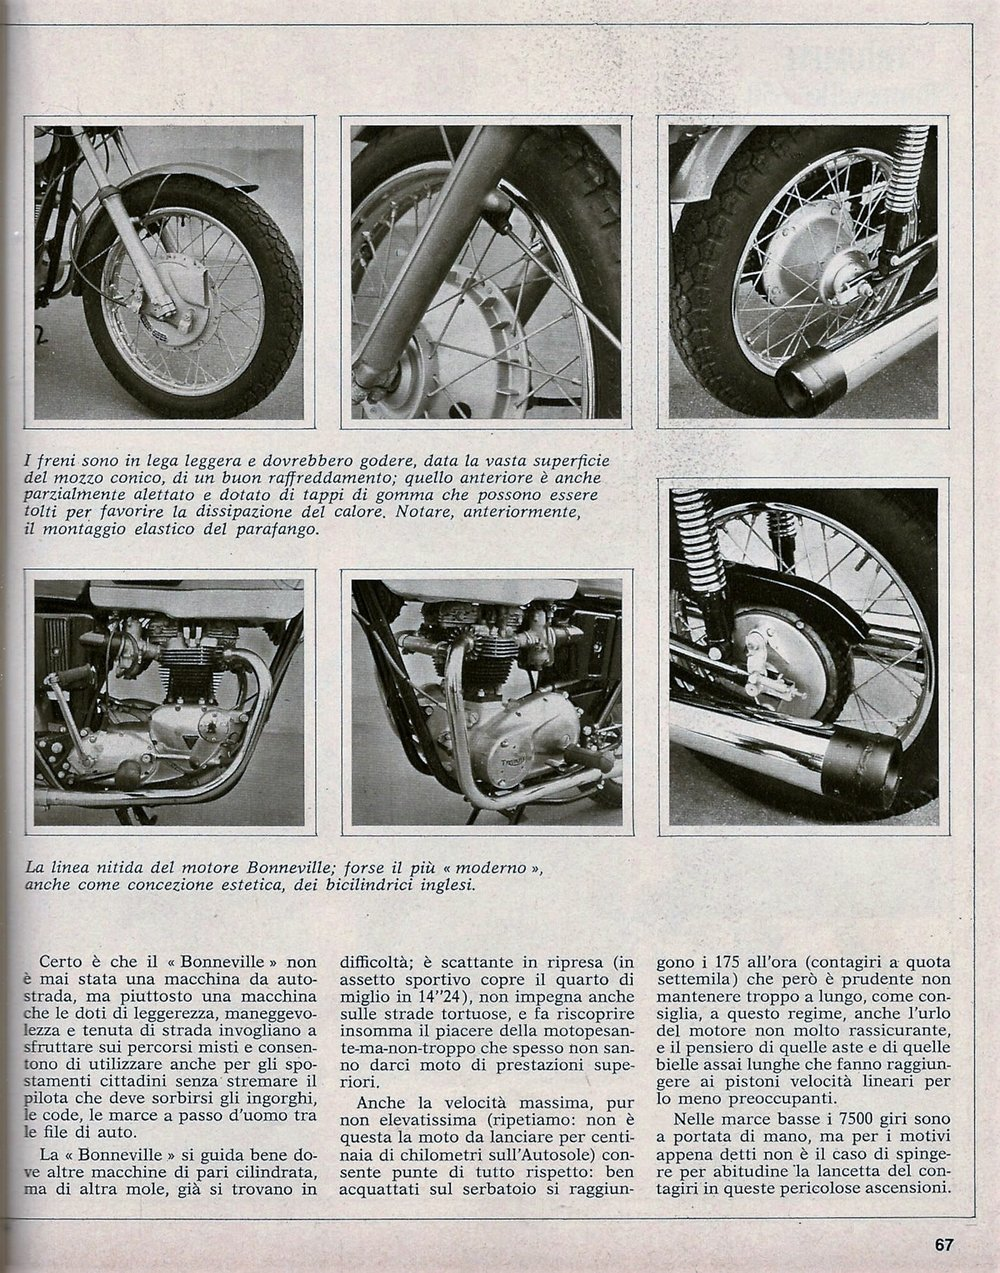 1972 Triumph Bonneville road test.10.jpg